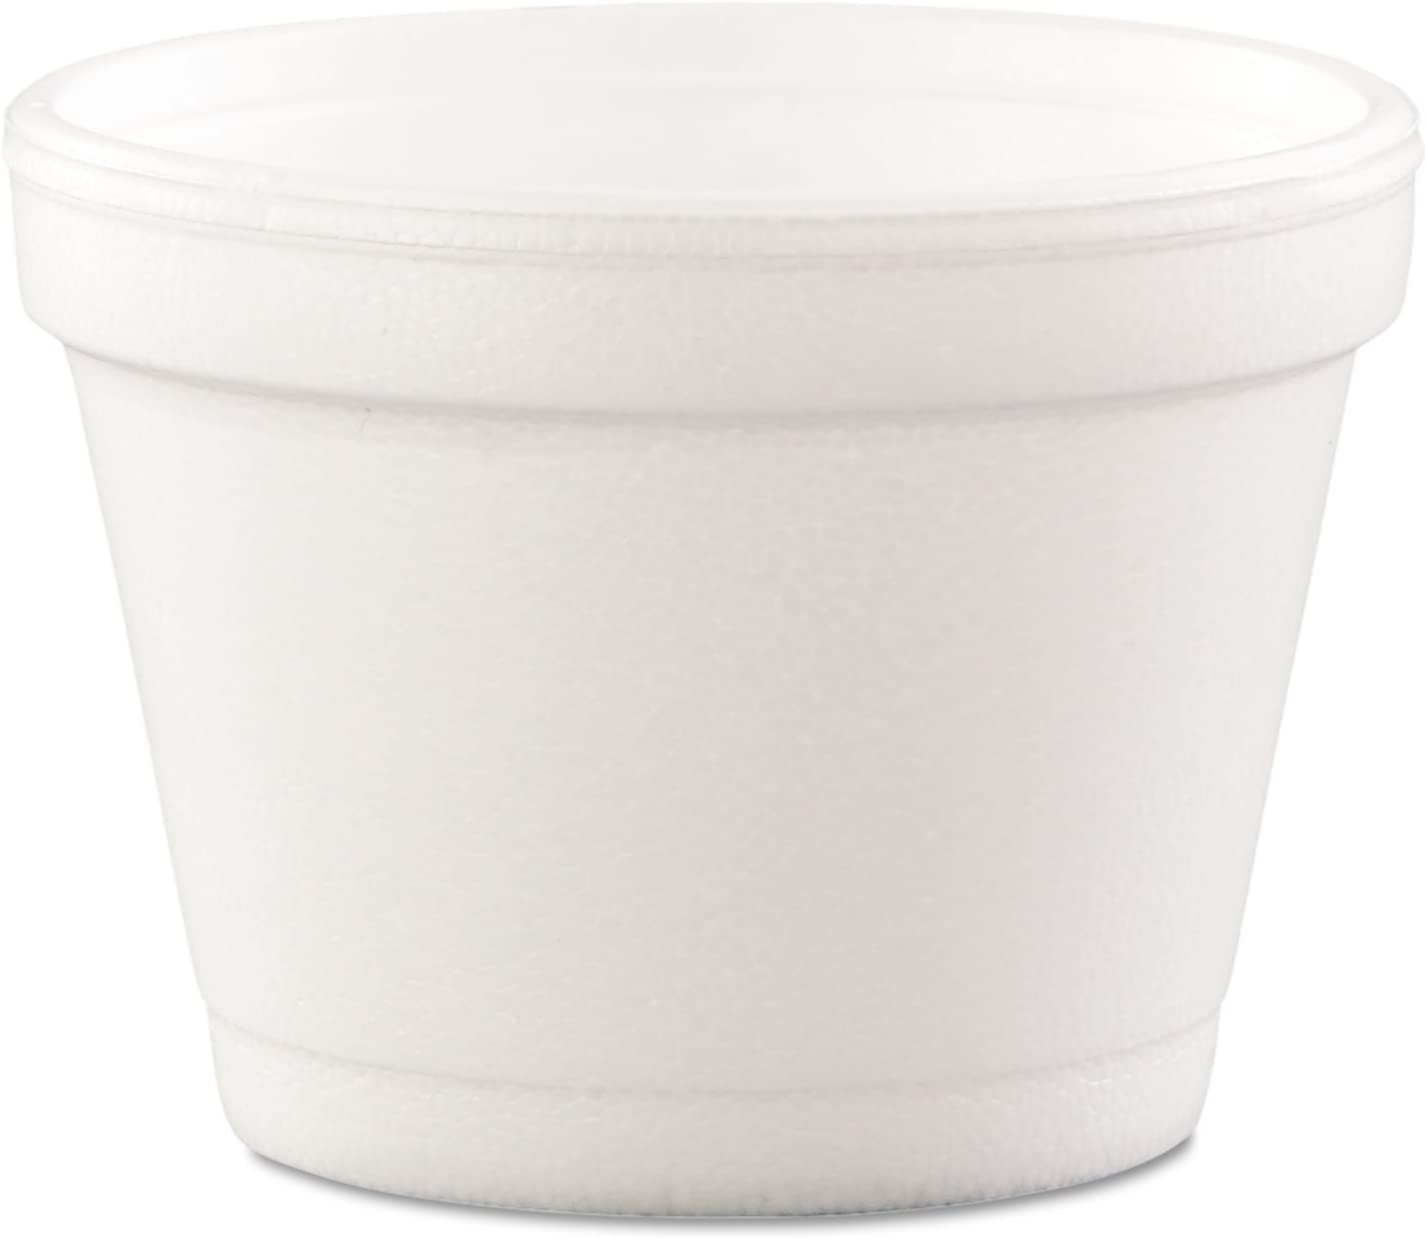 DCC Dart 4J6 Bowl Containers, Foam, 4oz, White (Case of 1000)